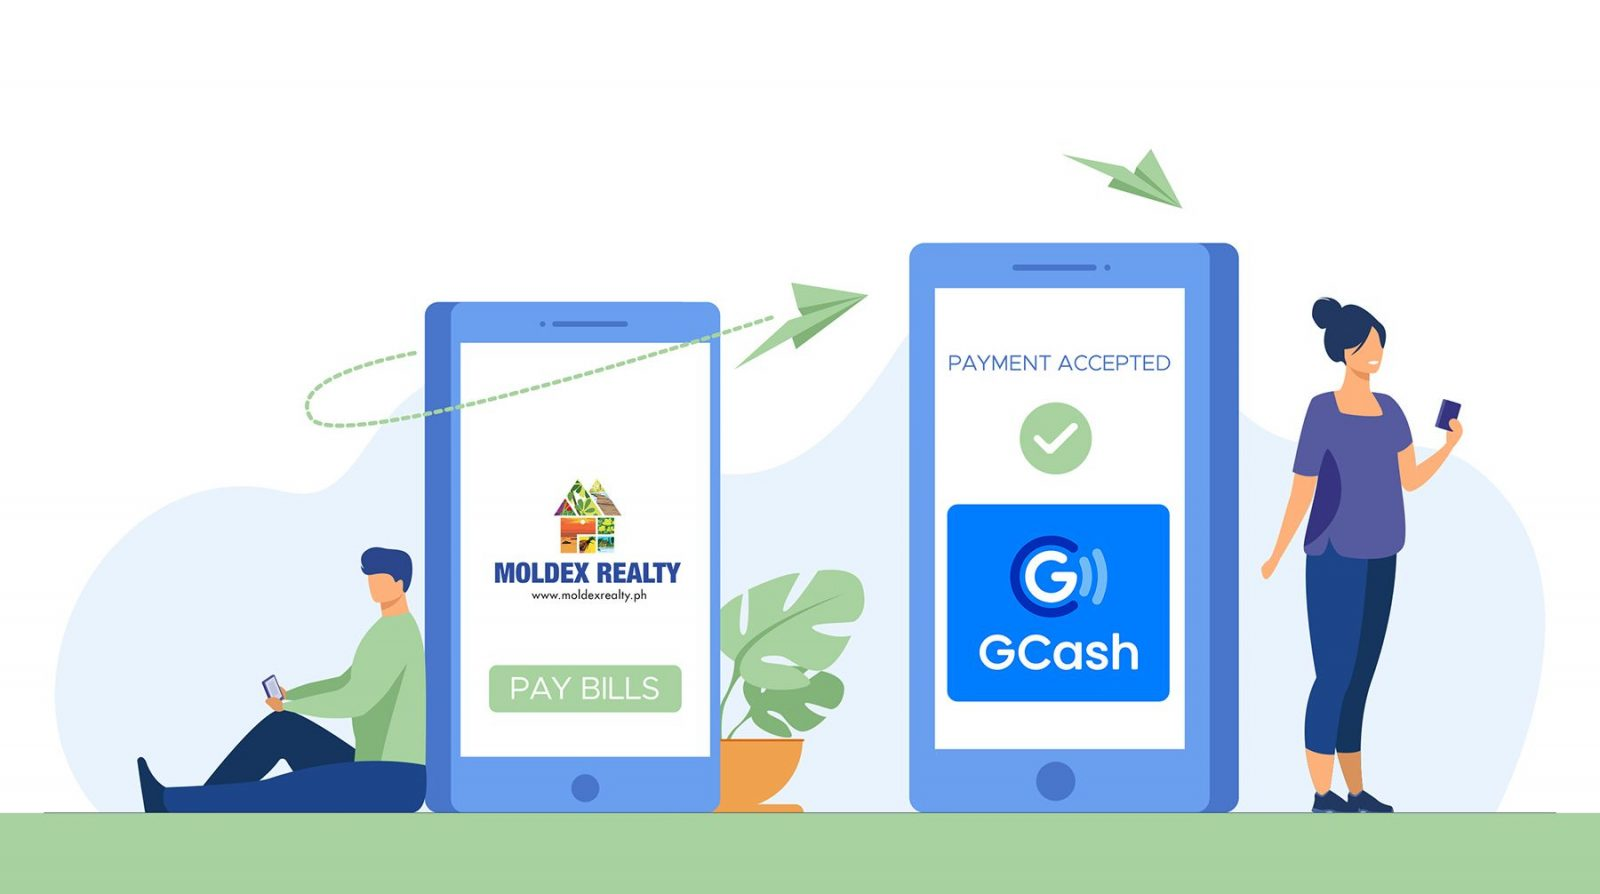 Paying your Moldex Realty property bills just got easier with G-Cash